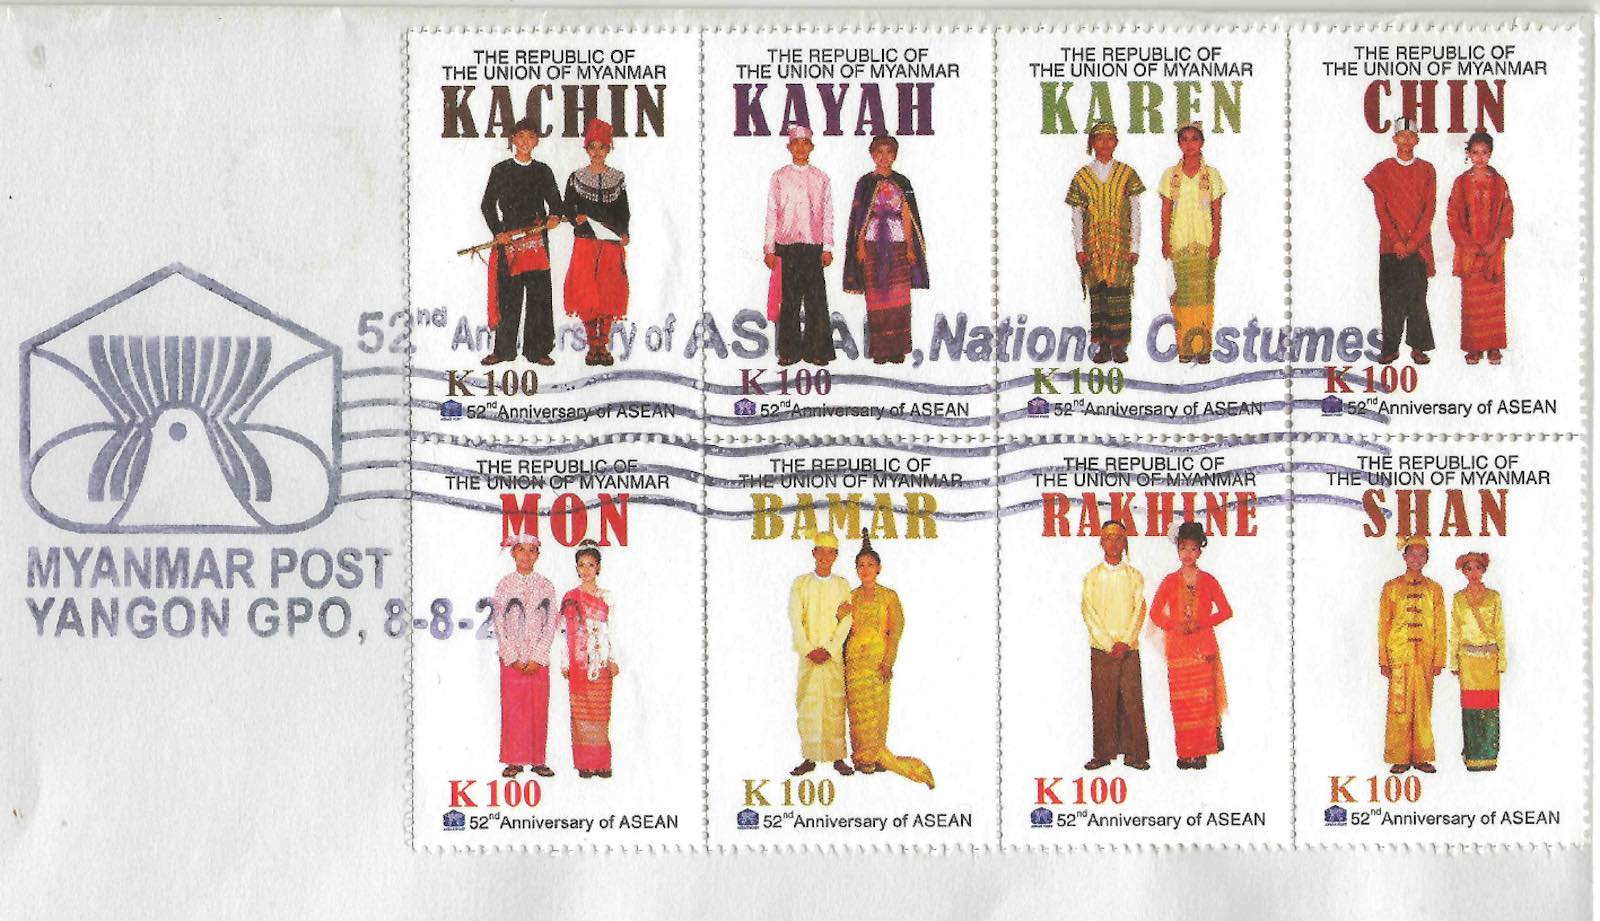 The latest issue of Myanmar stamps (Photo courtesy Andrew Selth)